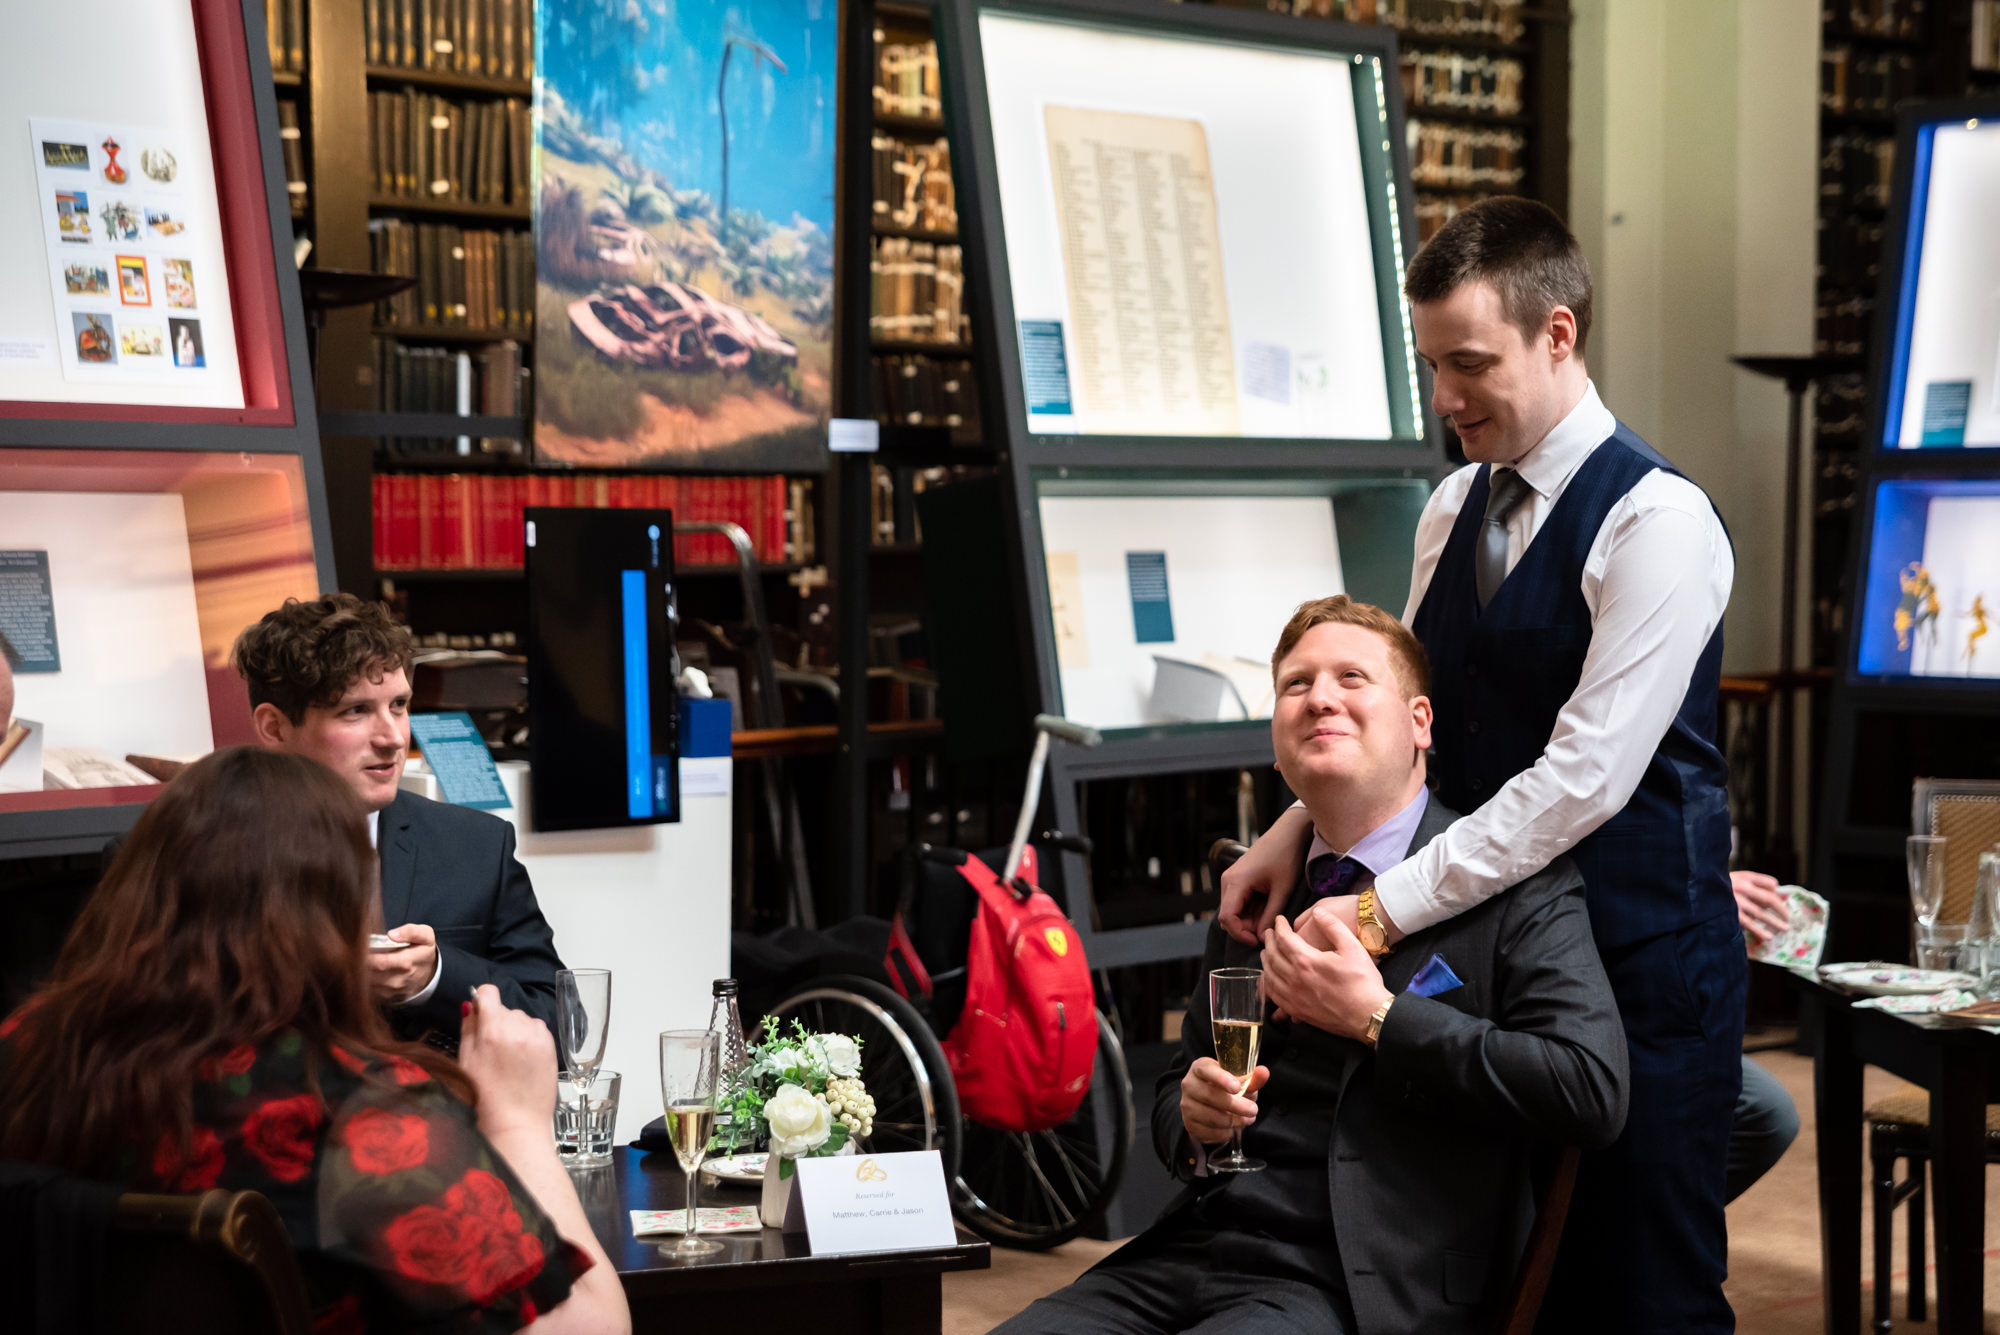 Grooms talking to their guests at The Portico Library